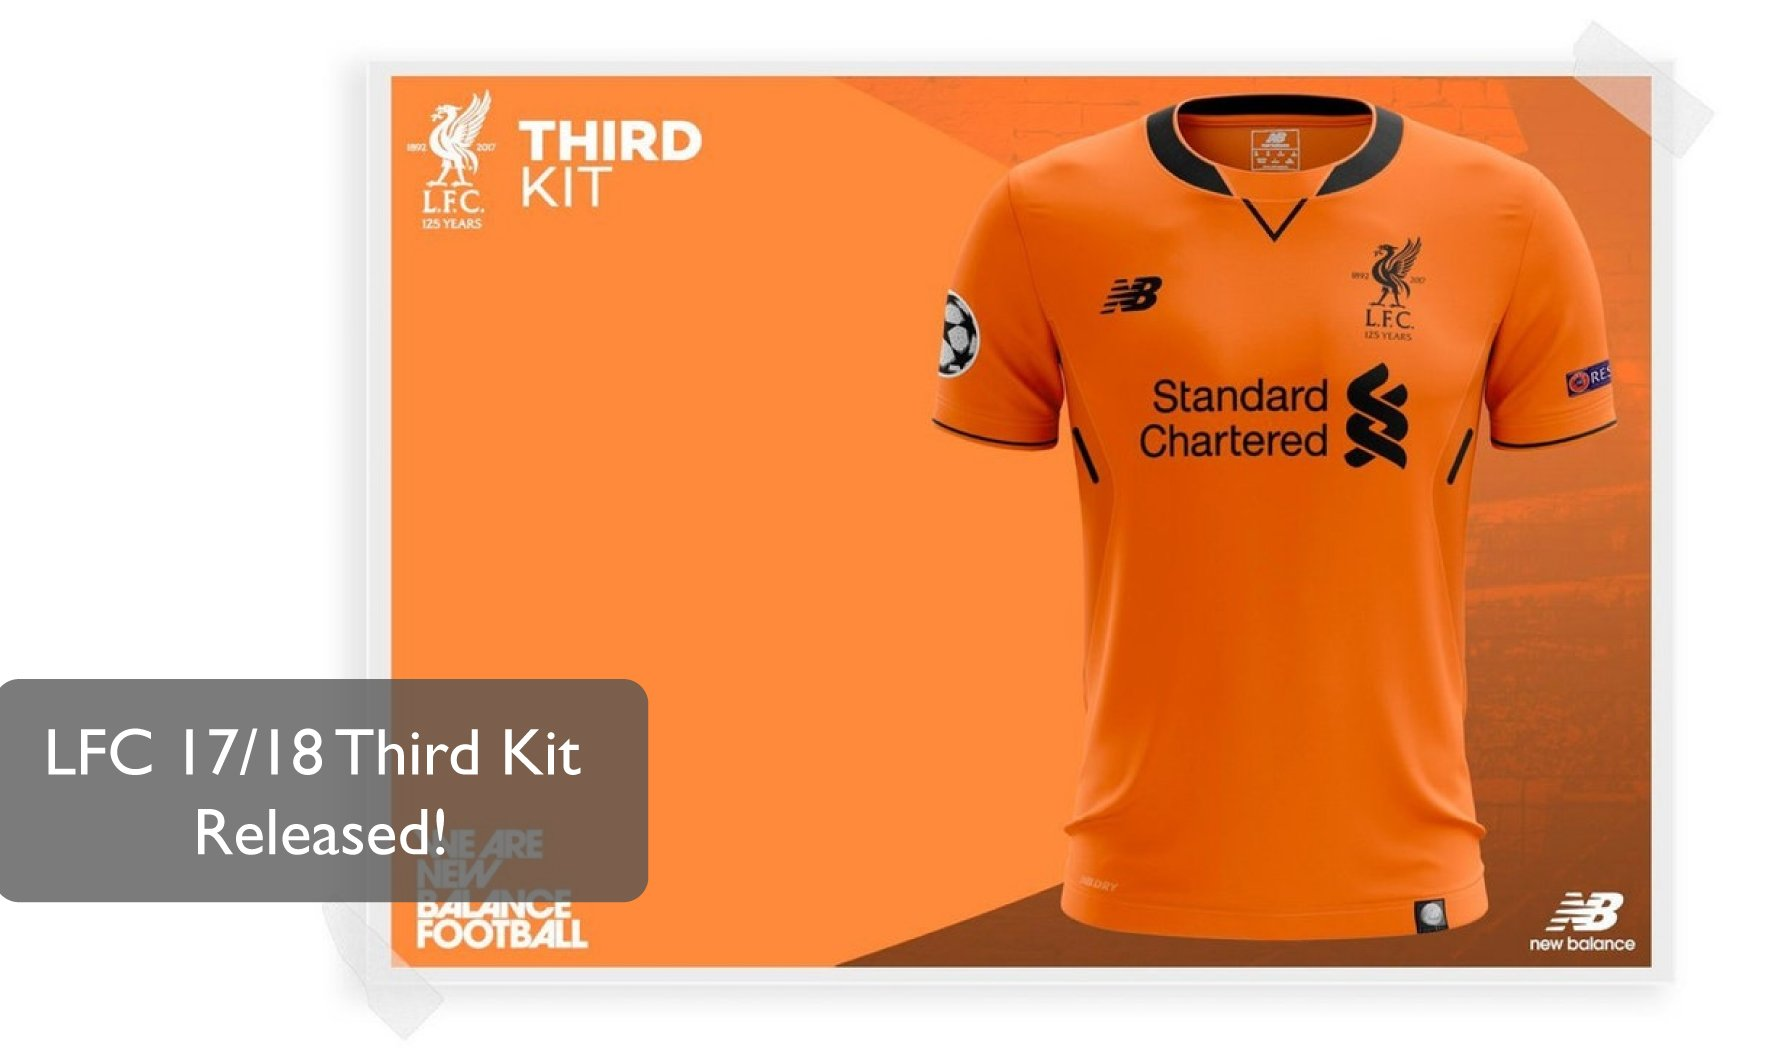 LFC 17 18 Third Kit Officially Released + Champions League Draw! 543d68000